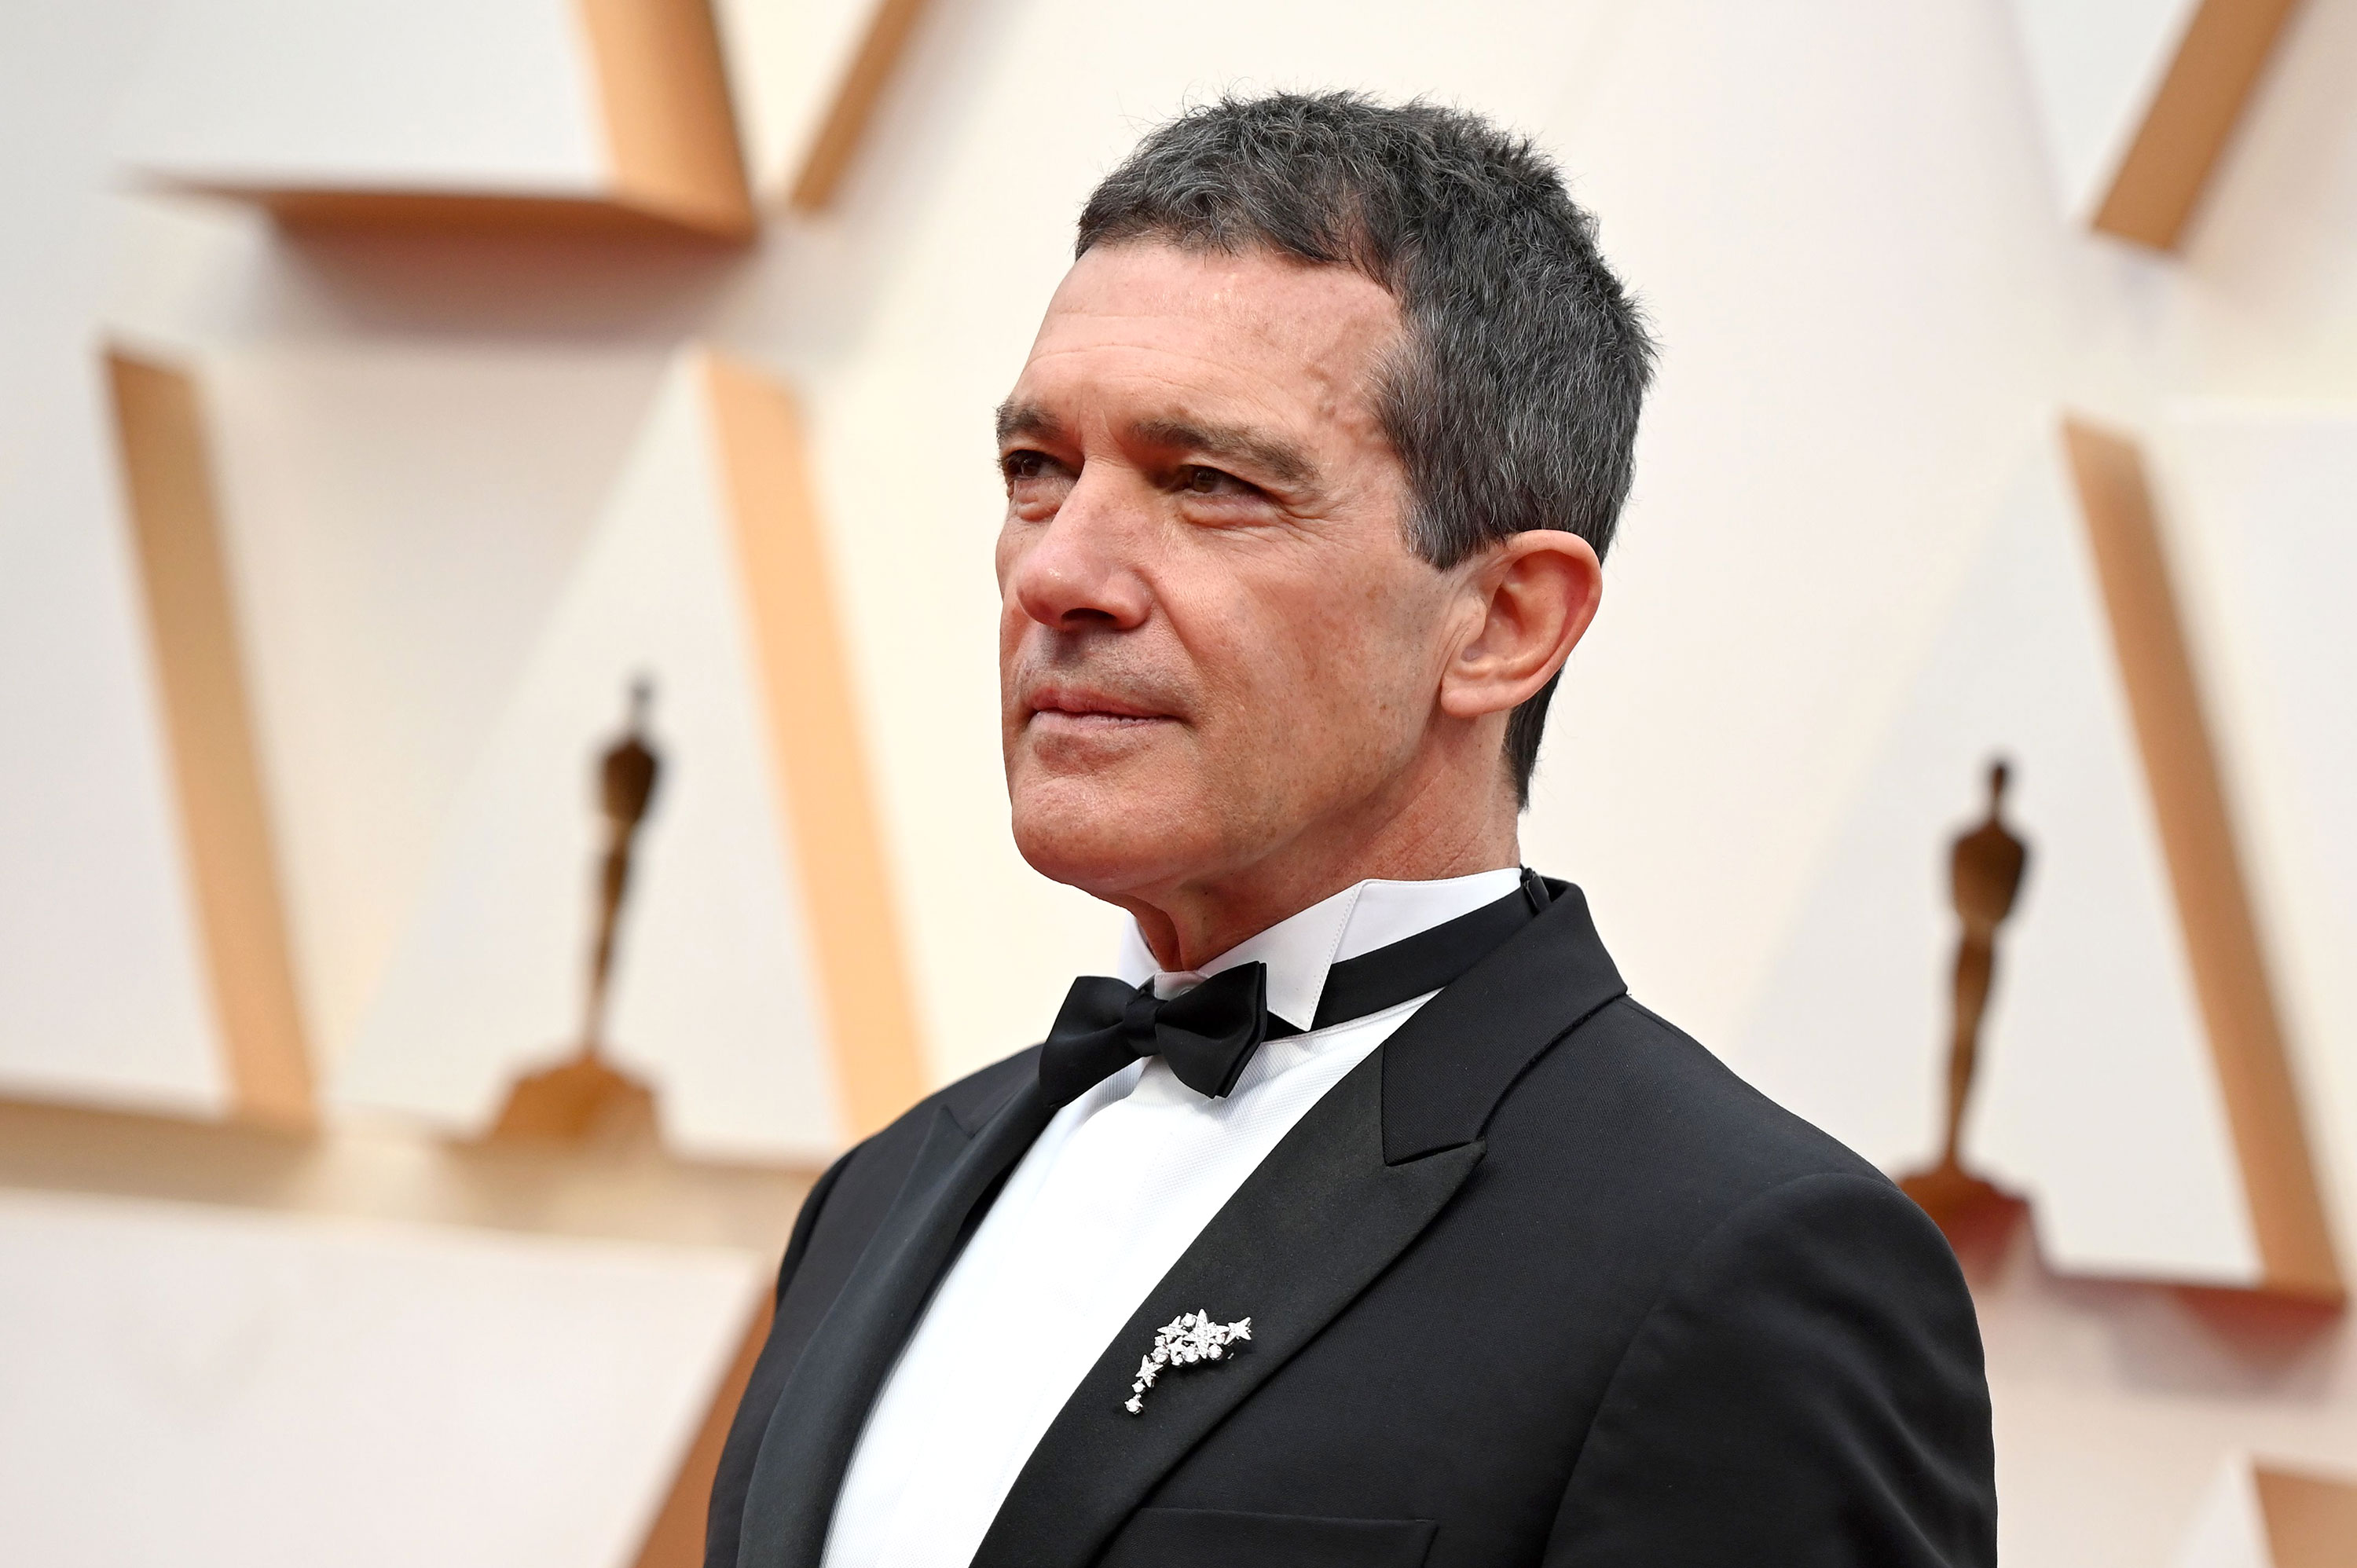 Antonio Banderas arrives for the 92nd Oscars at the Dolby Theatre in Hollywood, California on February 9.